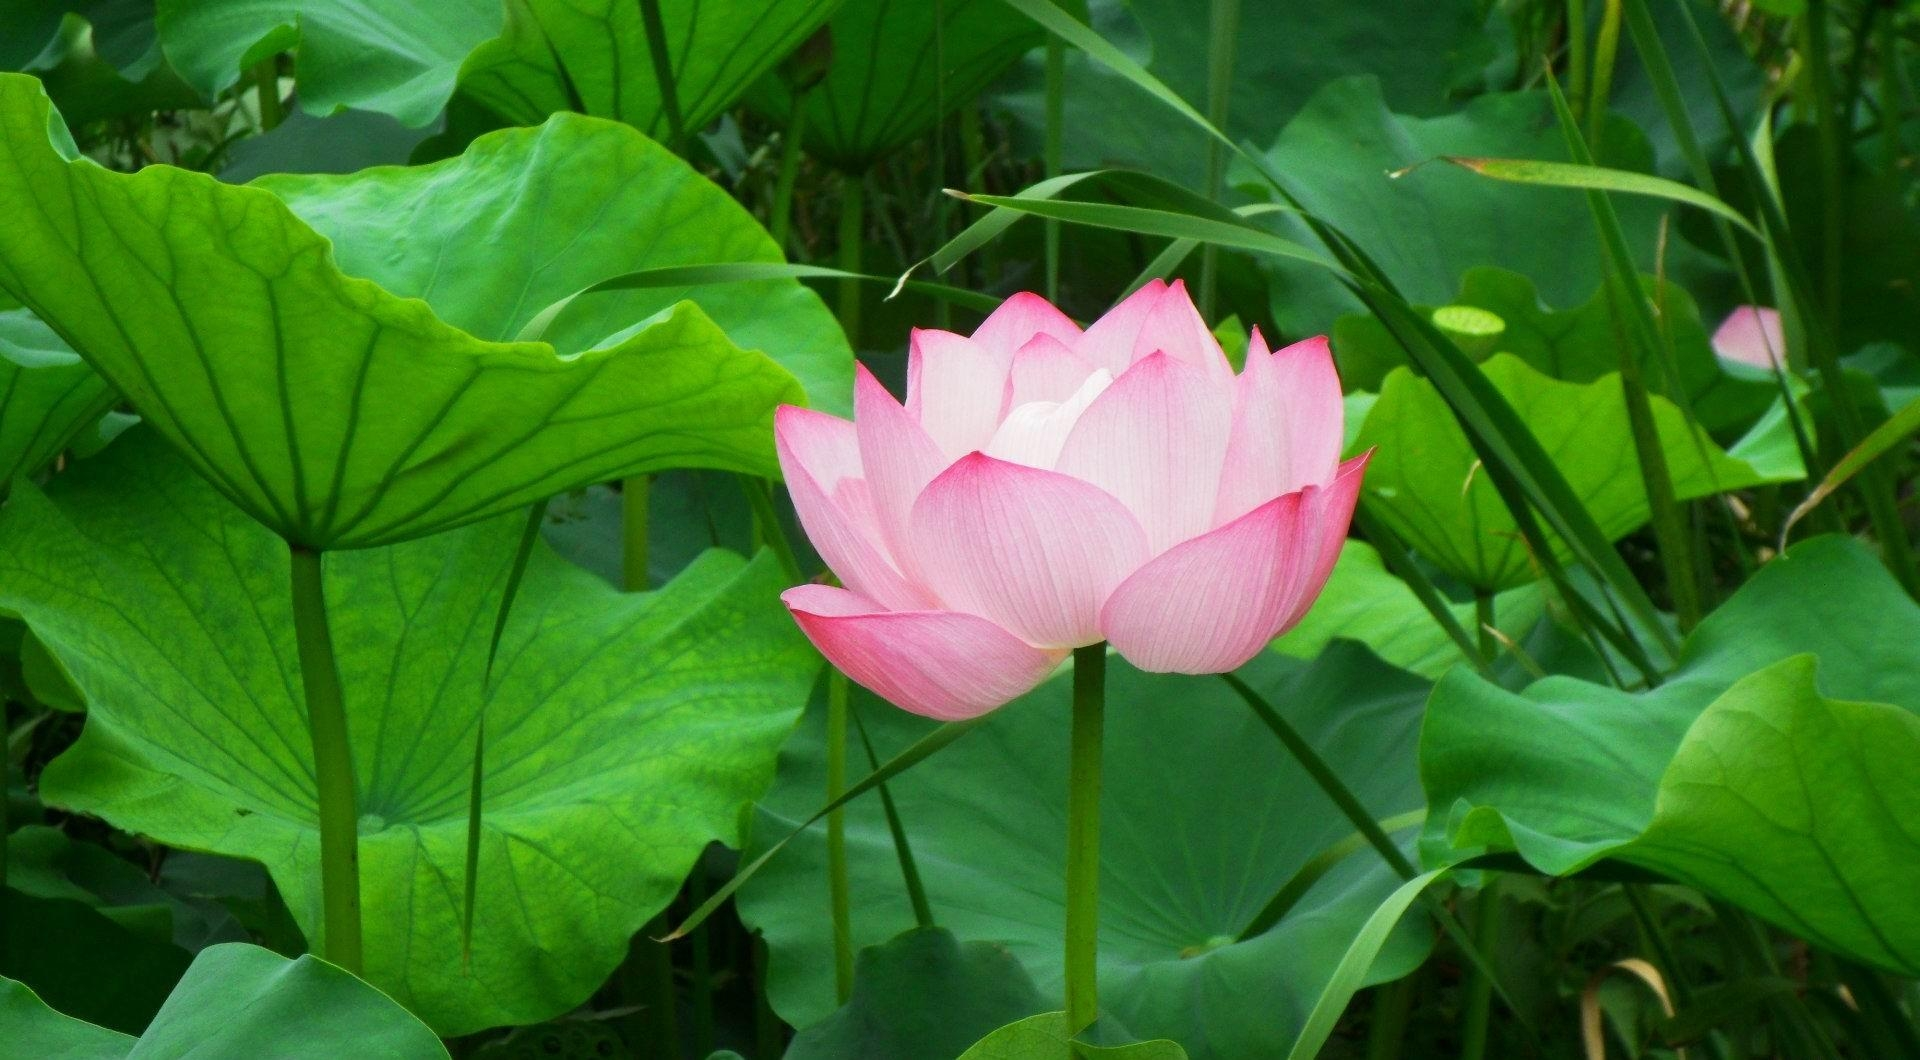 147284 download wallpaper Flowers, Lotus, Pink, Leaves, Greens screensavers and pictures for free